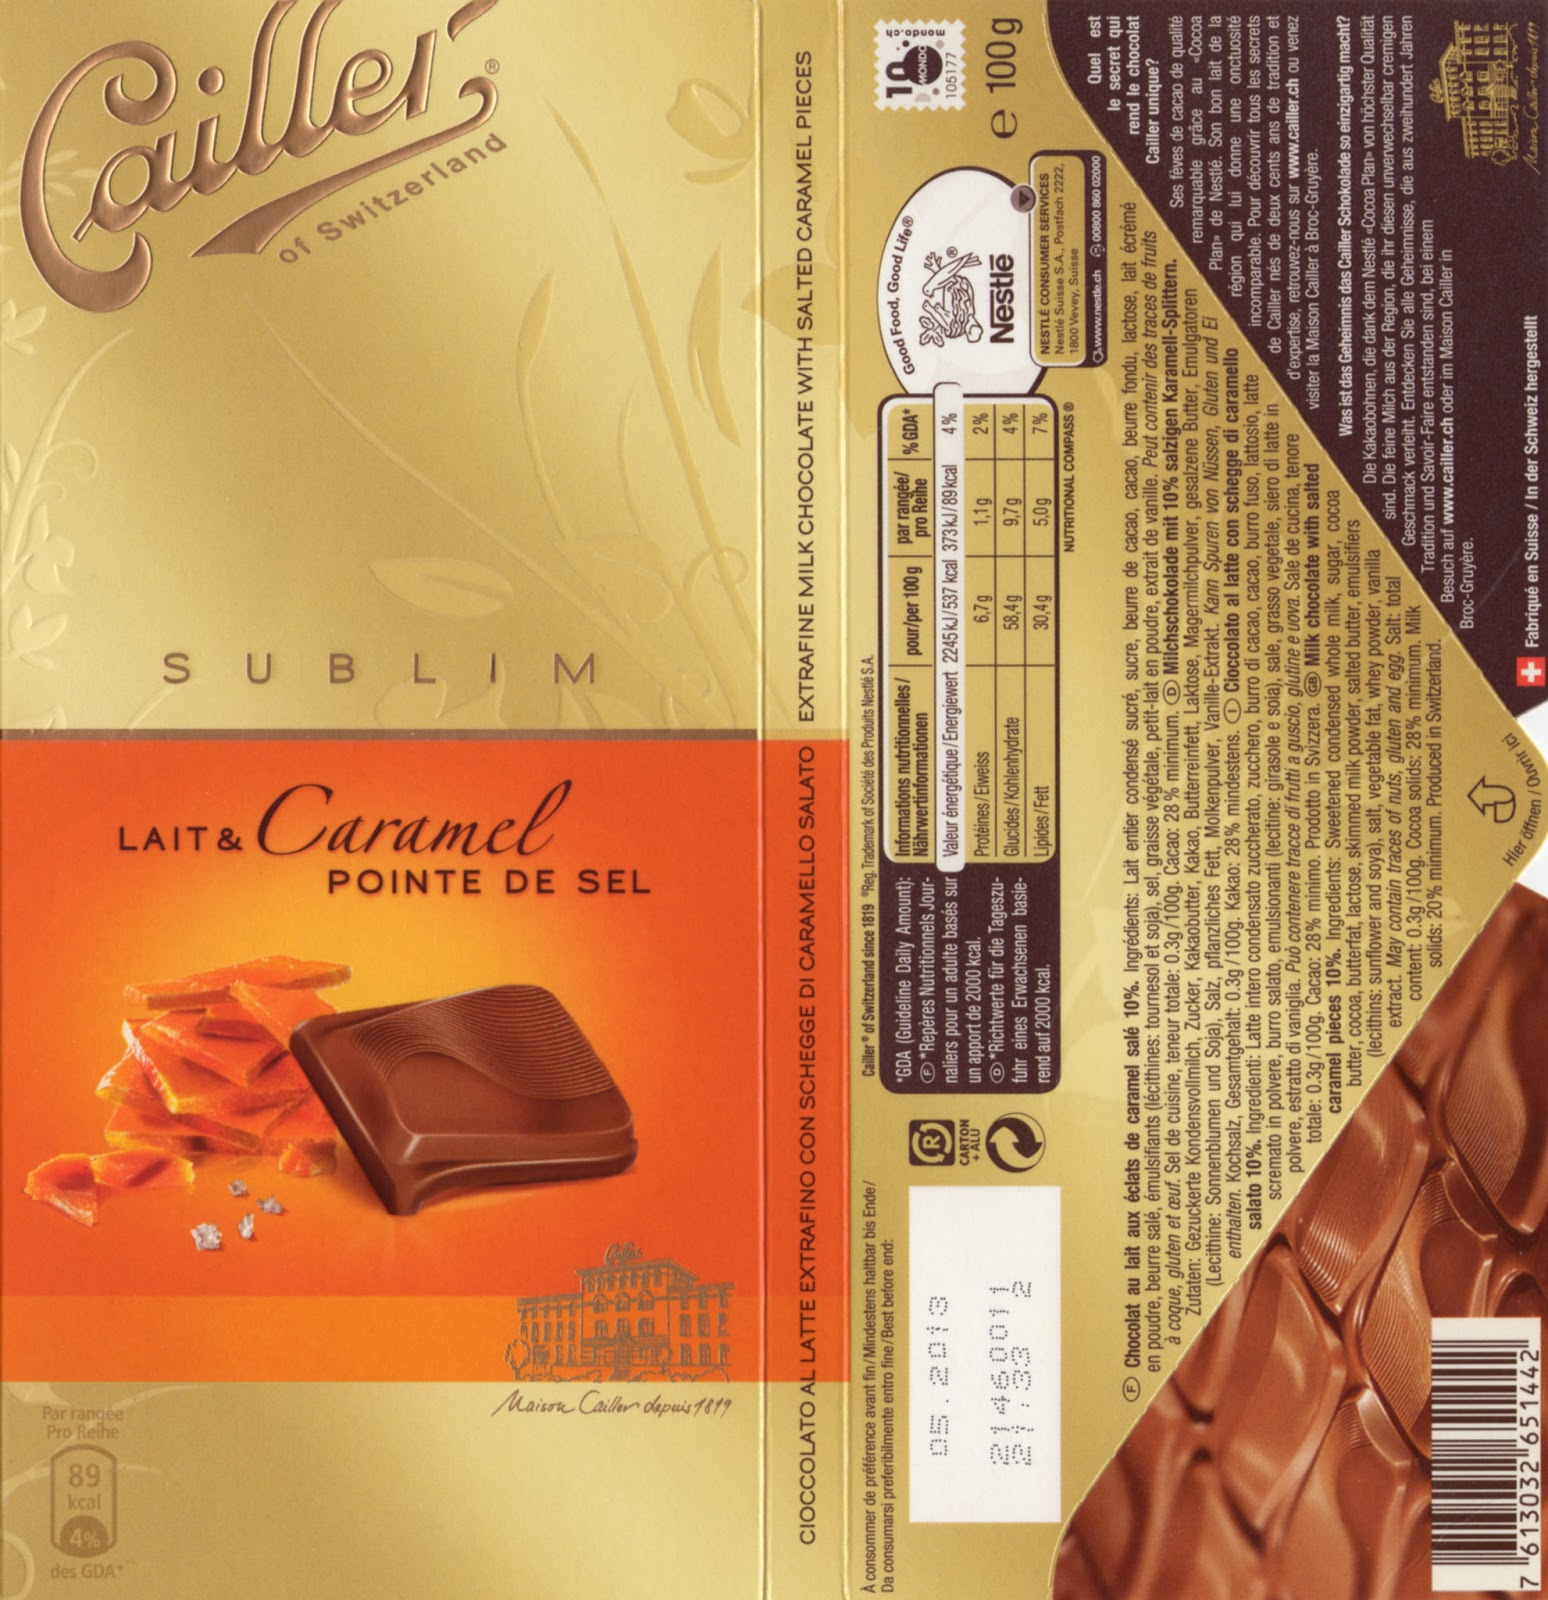 movieschocolatebooks: Salted Caramel Milk Chocolate by Cailler